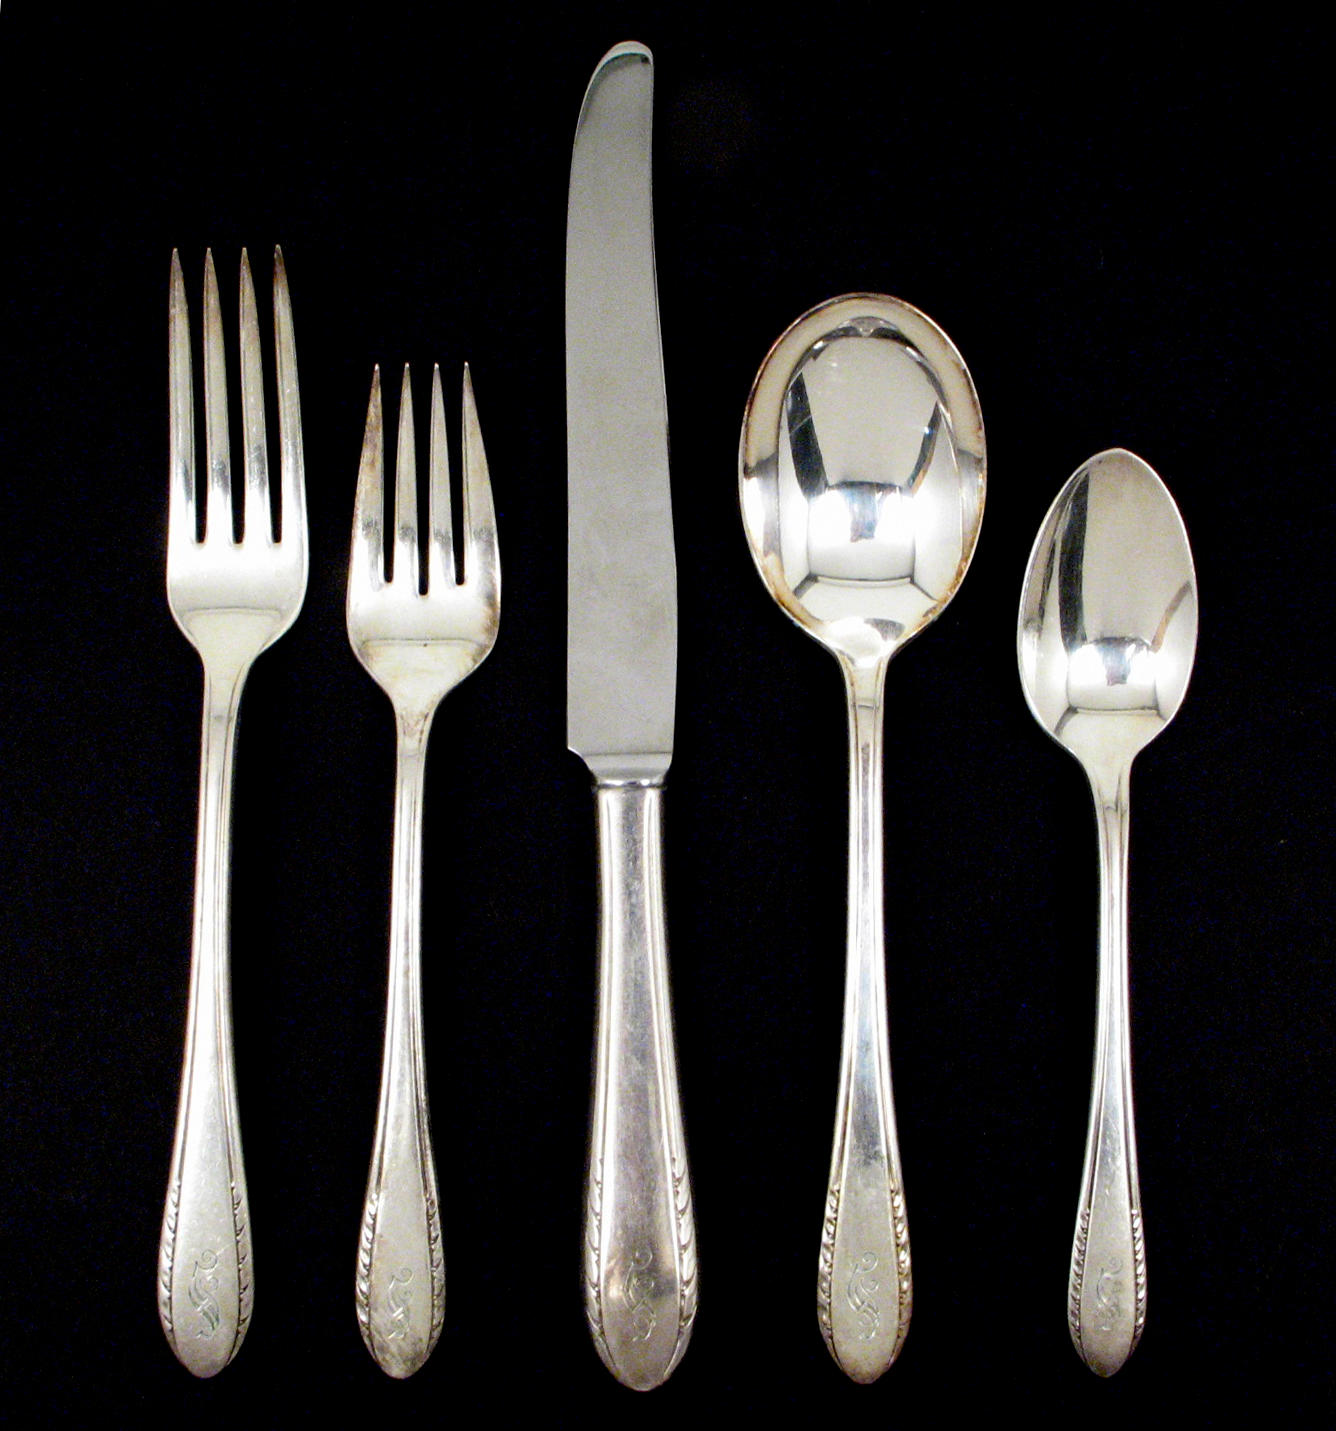 Holmes & Edwards Company knives forks spoons